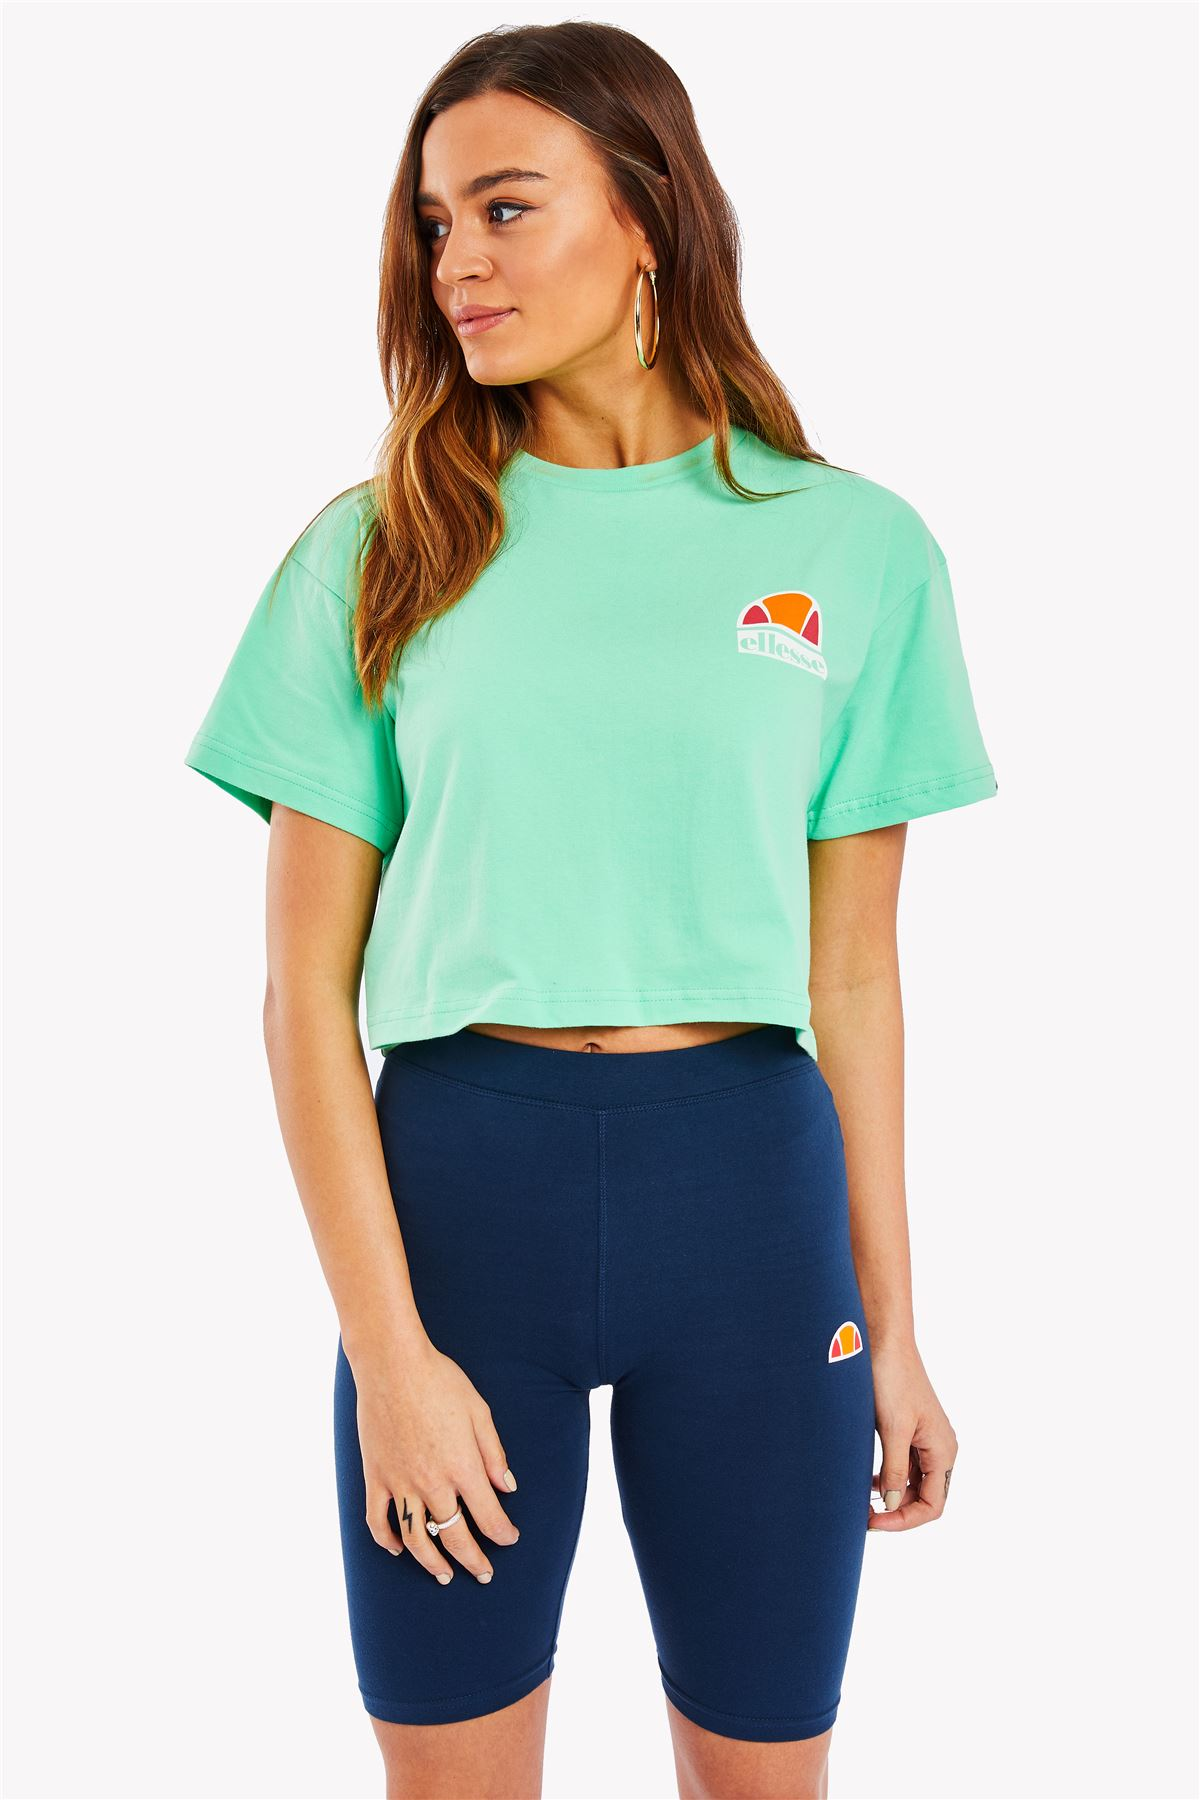 Ellesse-End-of-Line-Clearance-Sale-Bargain-Womens-Tops-T-Shirts-Free-UK-Ship thumbnail 33